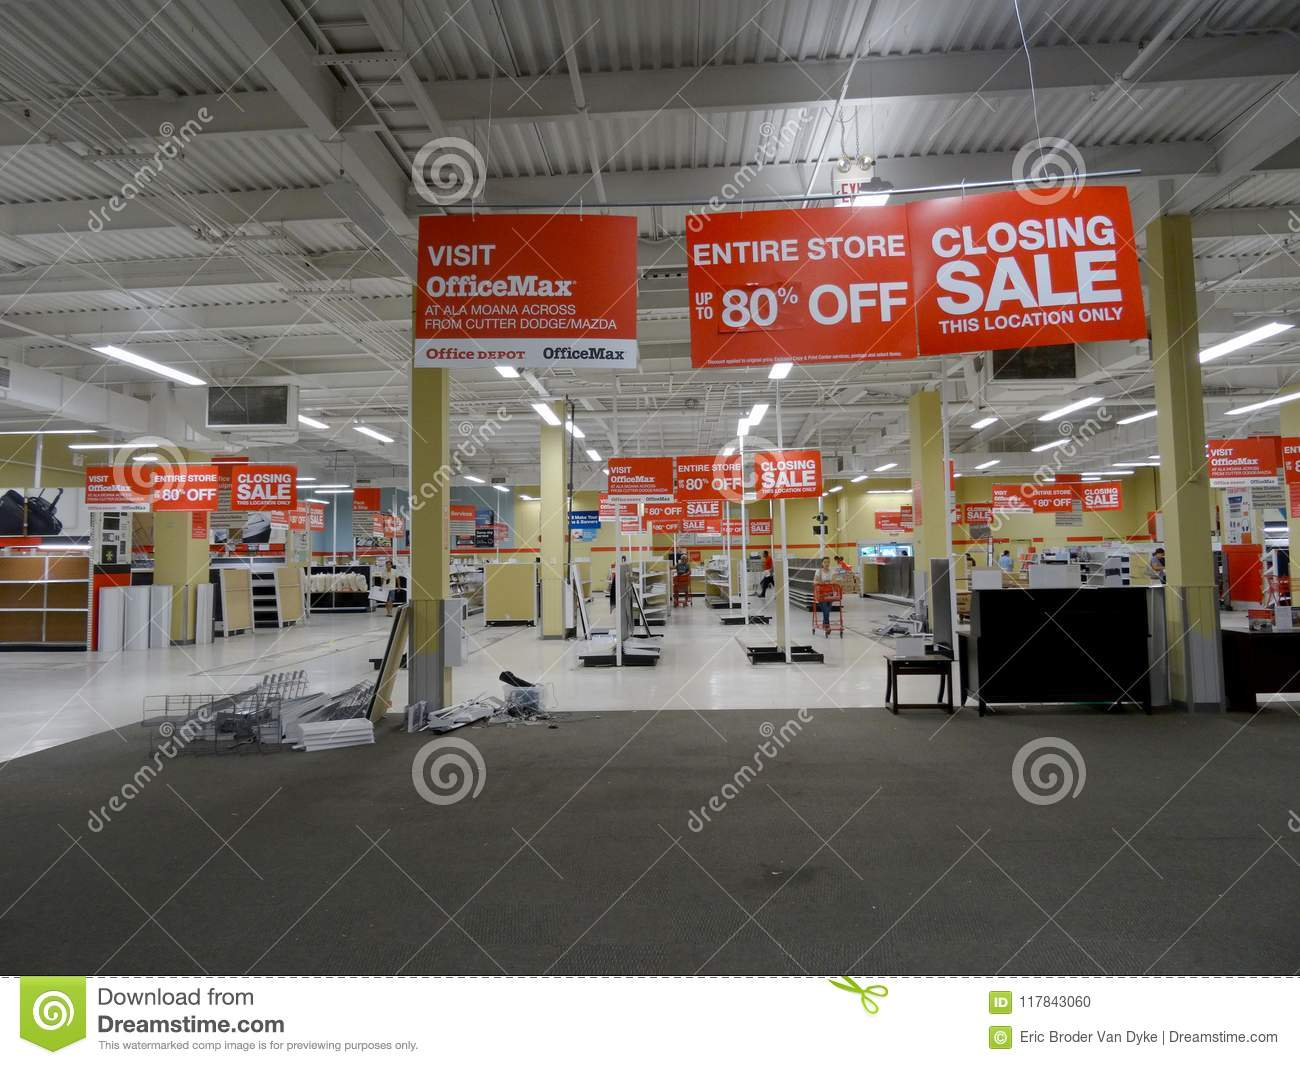 Officemax Honolulu Store Closing Sale Editorial Image Image Of